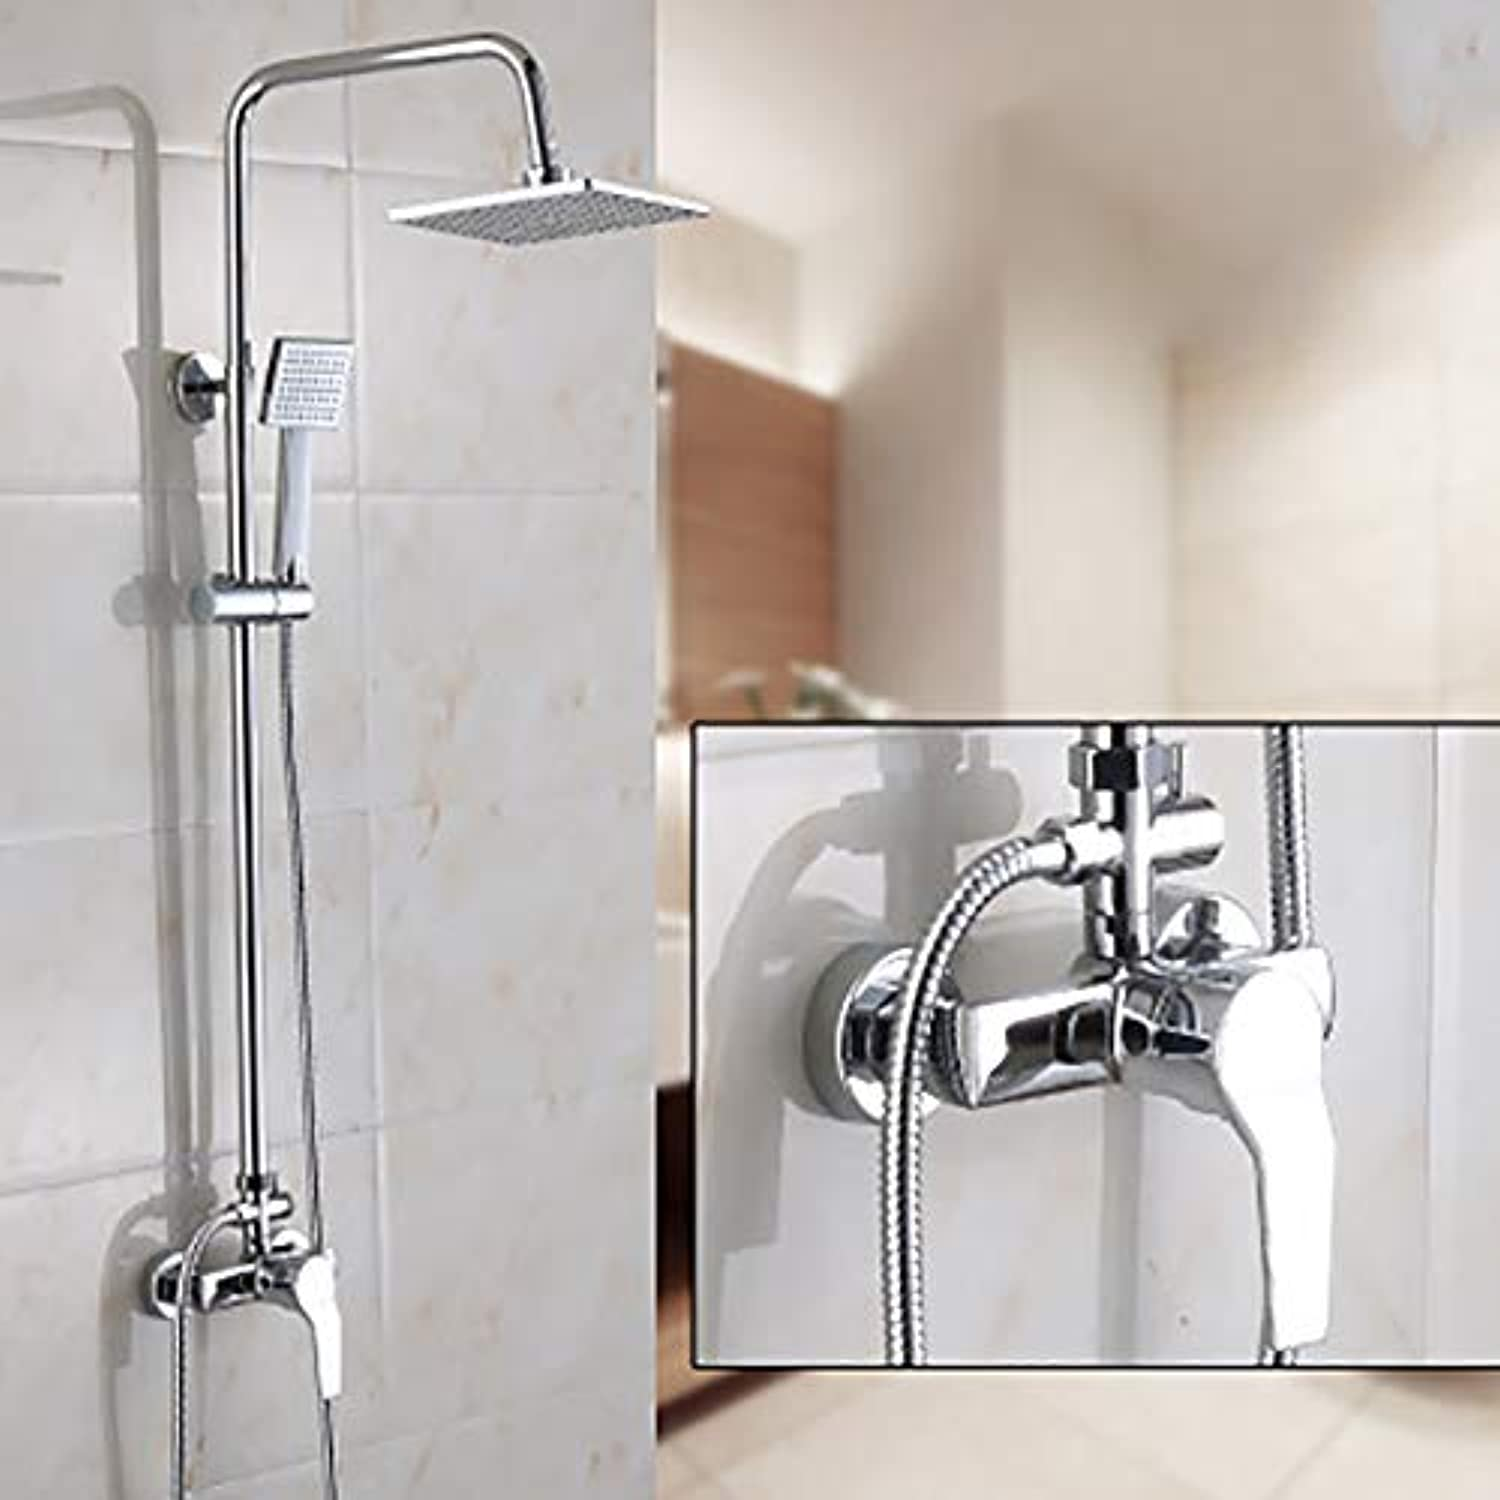 LSHUAIDJ Shower Mixer 3 with Shower Set with Shower Holder, Shower System Main Body Copper, Square Adjustable Shower Holder Rail Chrome-Weiß1